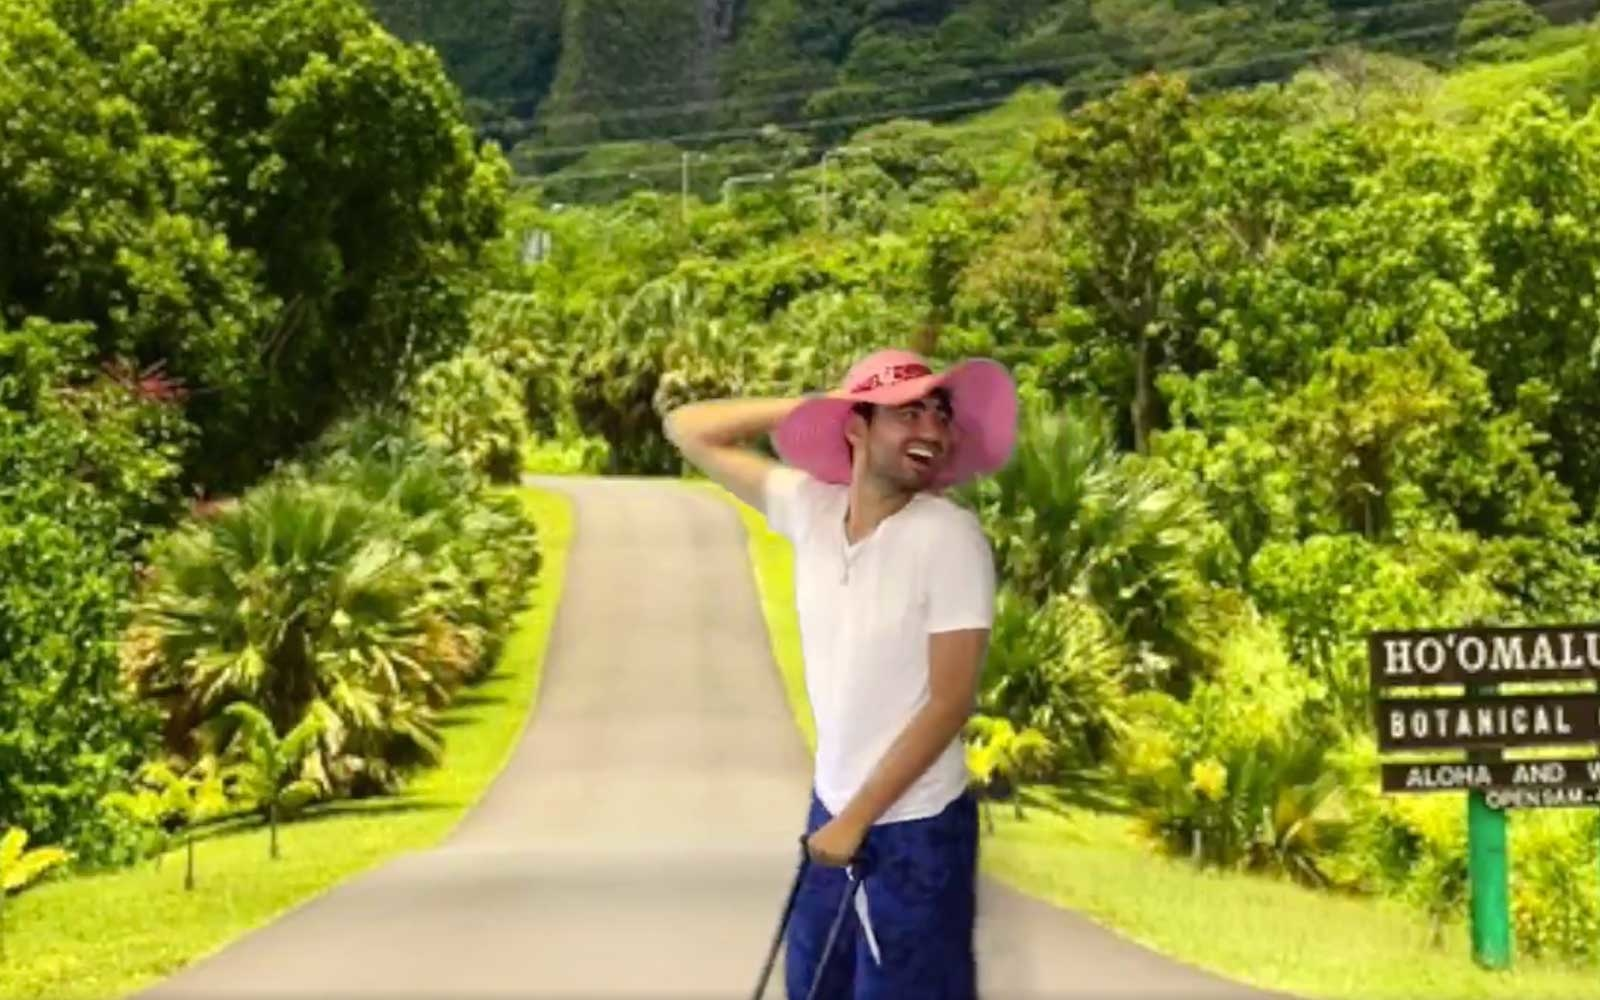 Twitter user, @aanthonyy07, green screened vacation to Hawaii